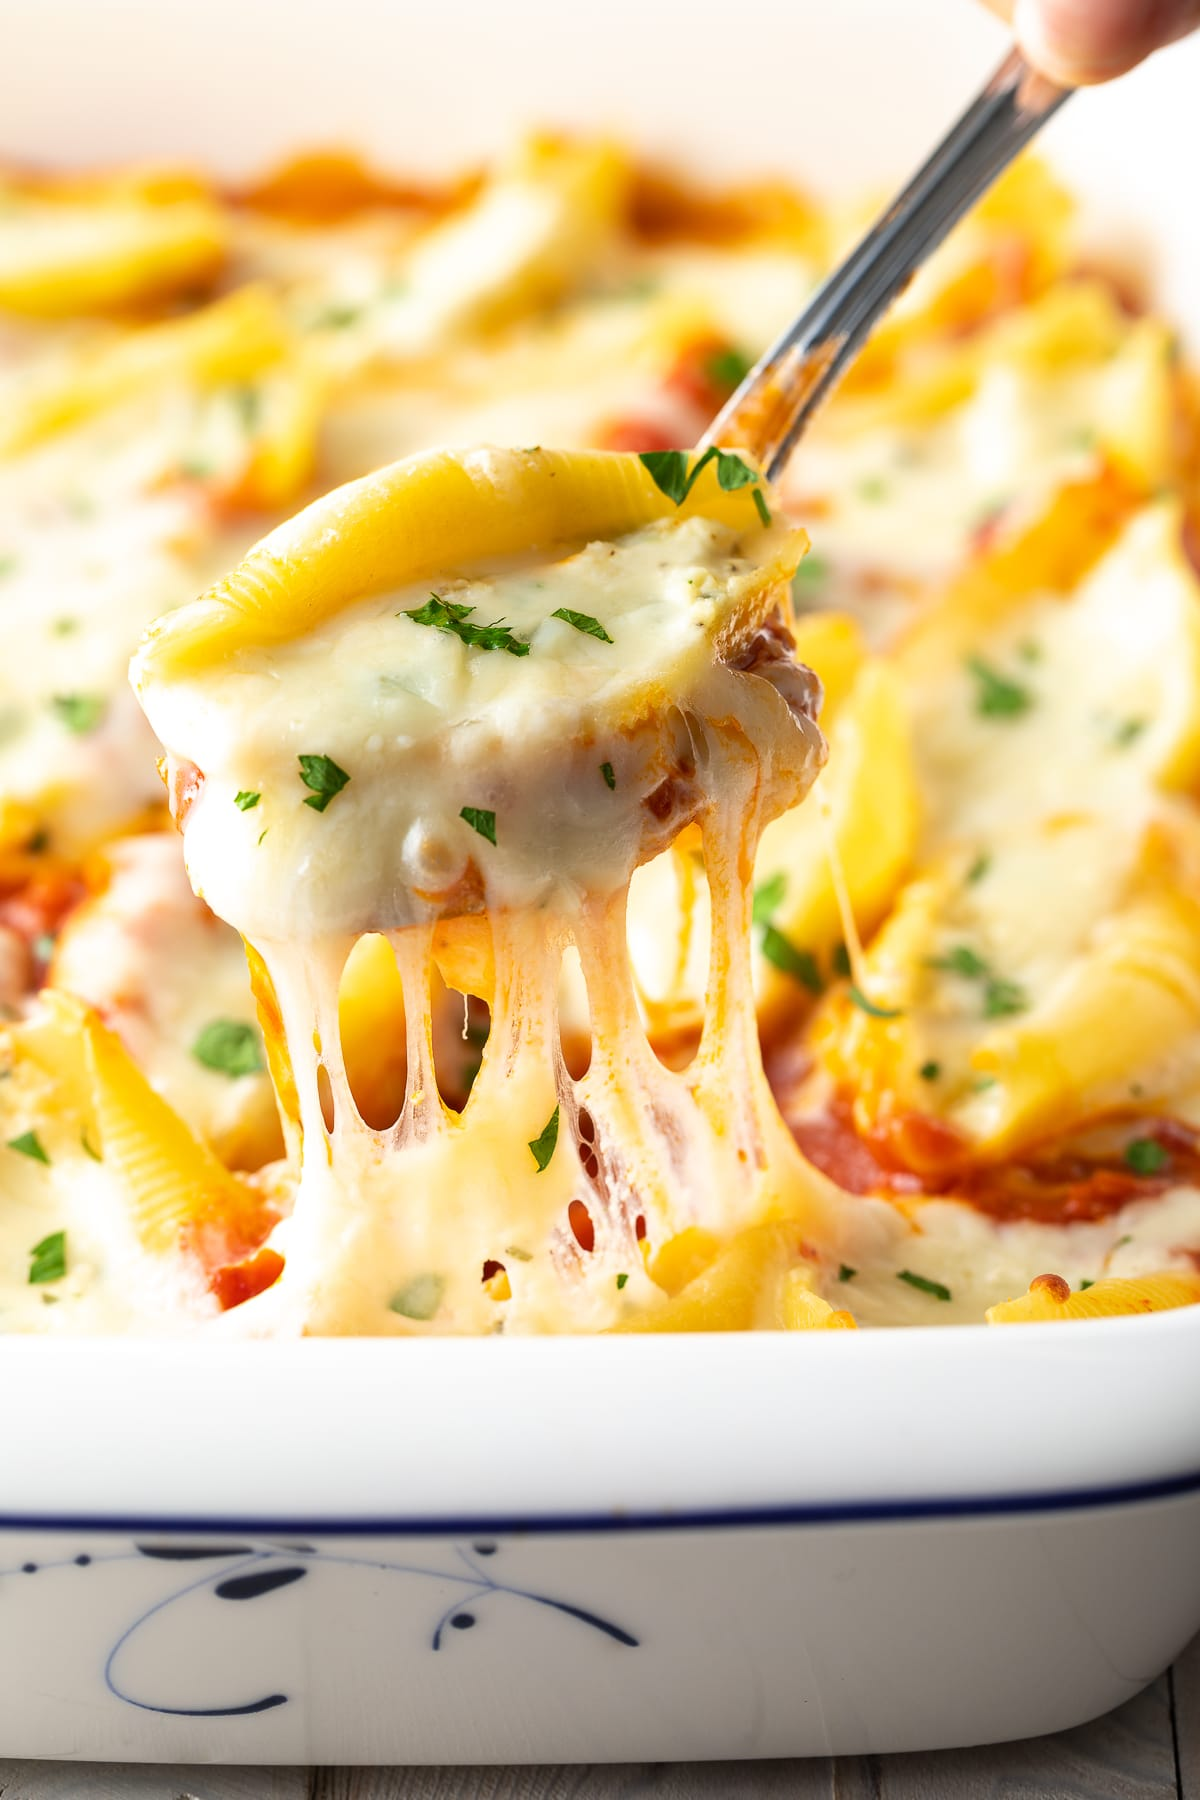 Best Classic Ricotta Stuffed Shells Recipe #ASpicyPerspective #stuffed #shells #ricotta #holiday #italian #comfortfood #pasta #baked #slowcooker #crockpot